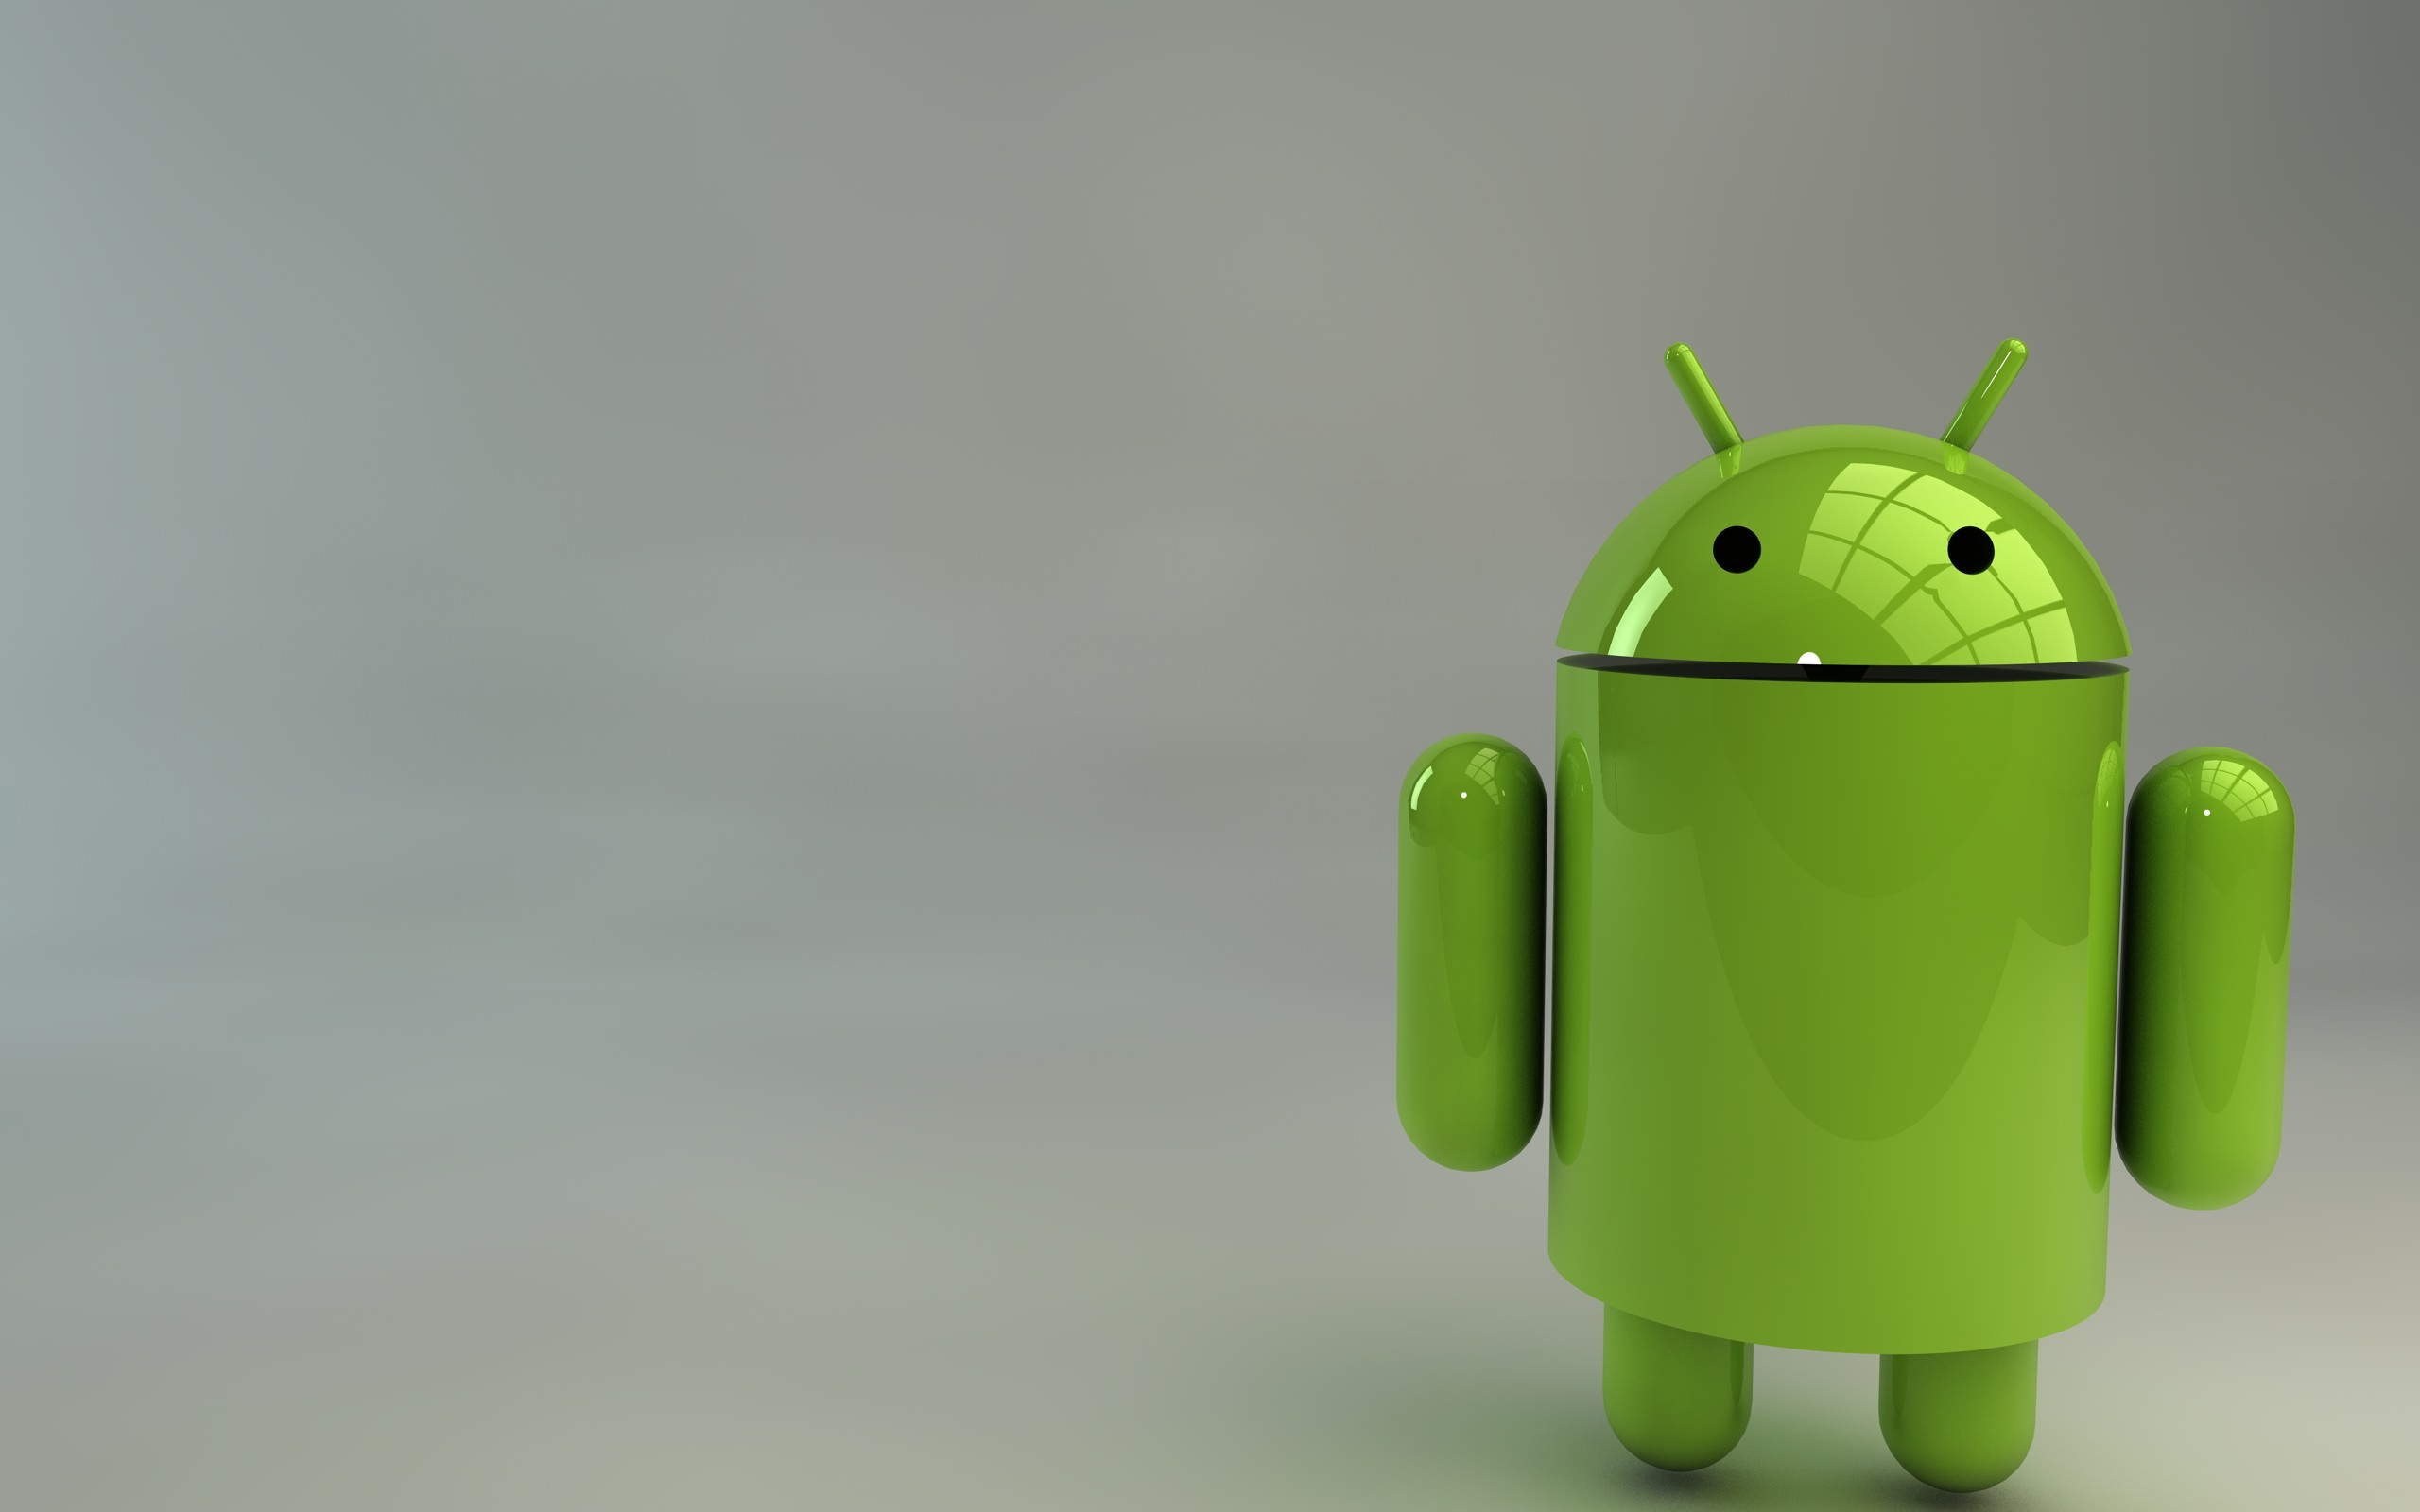 3d Wallpapers For Android Phones: 3D Android Wallpaper